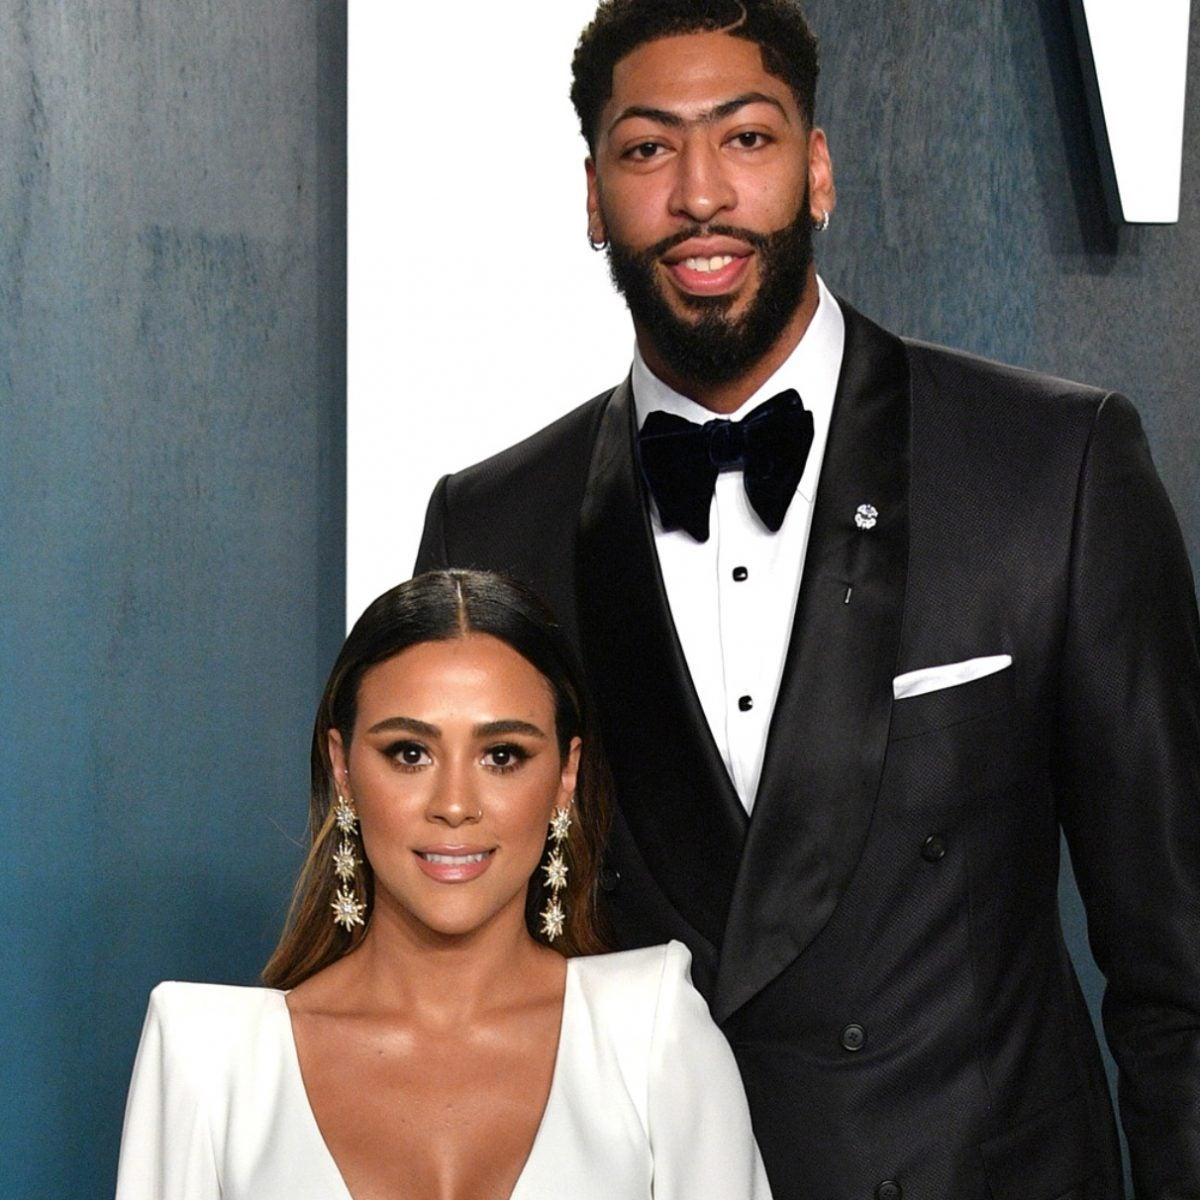 Lakers Star Anthony Davis Serenaded His Bride And Performed With New Edition At Star-Studded LA Wedding